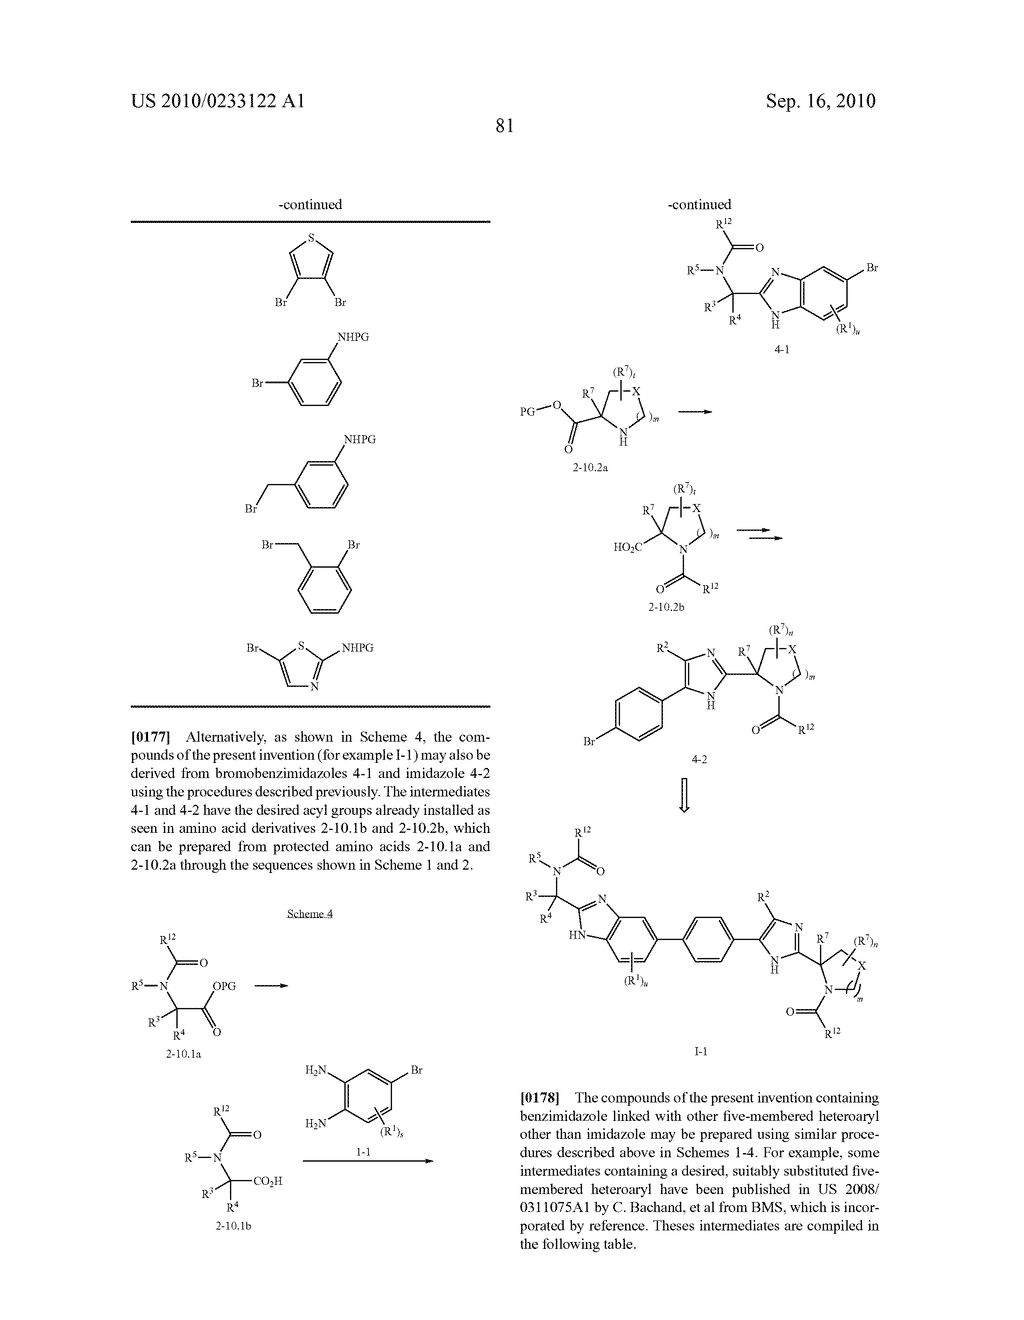 NOVEL BENZIMIDAZOLE DERIVATIVES - diagram, schematic, and image 82